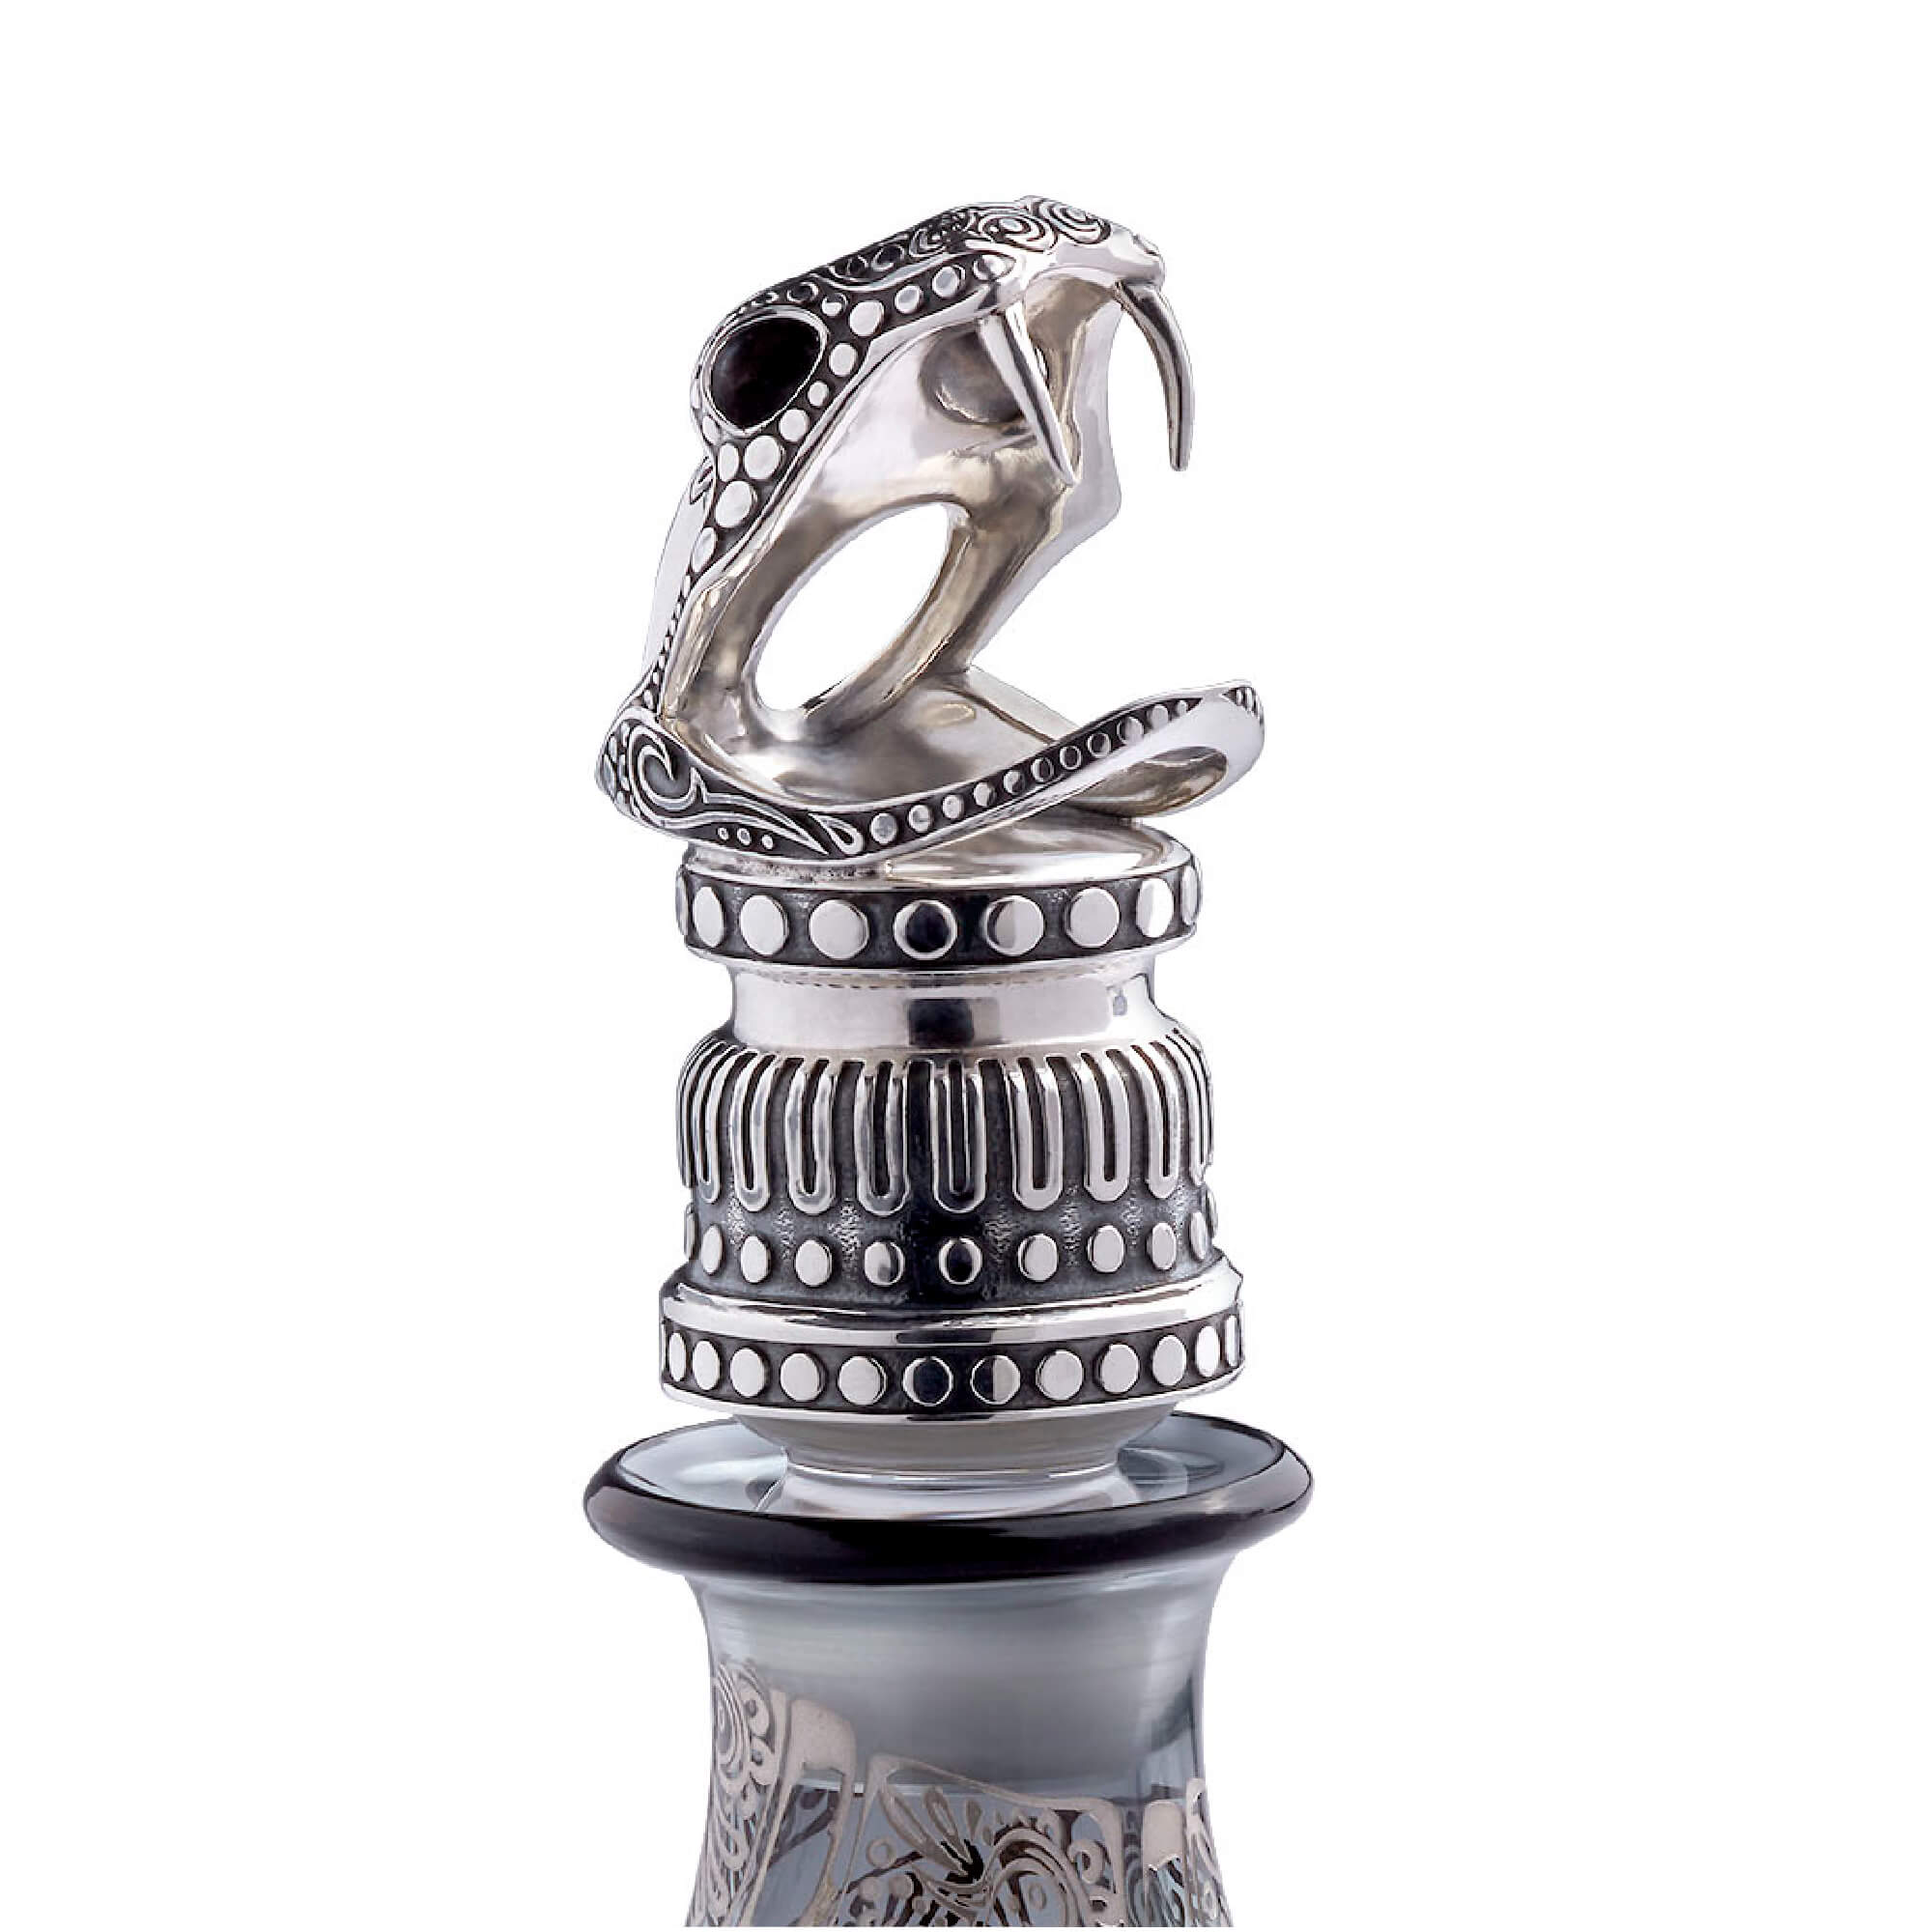 Glass Decanter with Silver Snake Topper | Stephen Webster